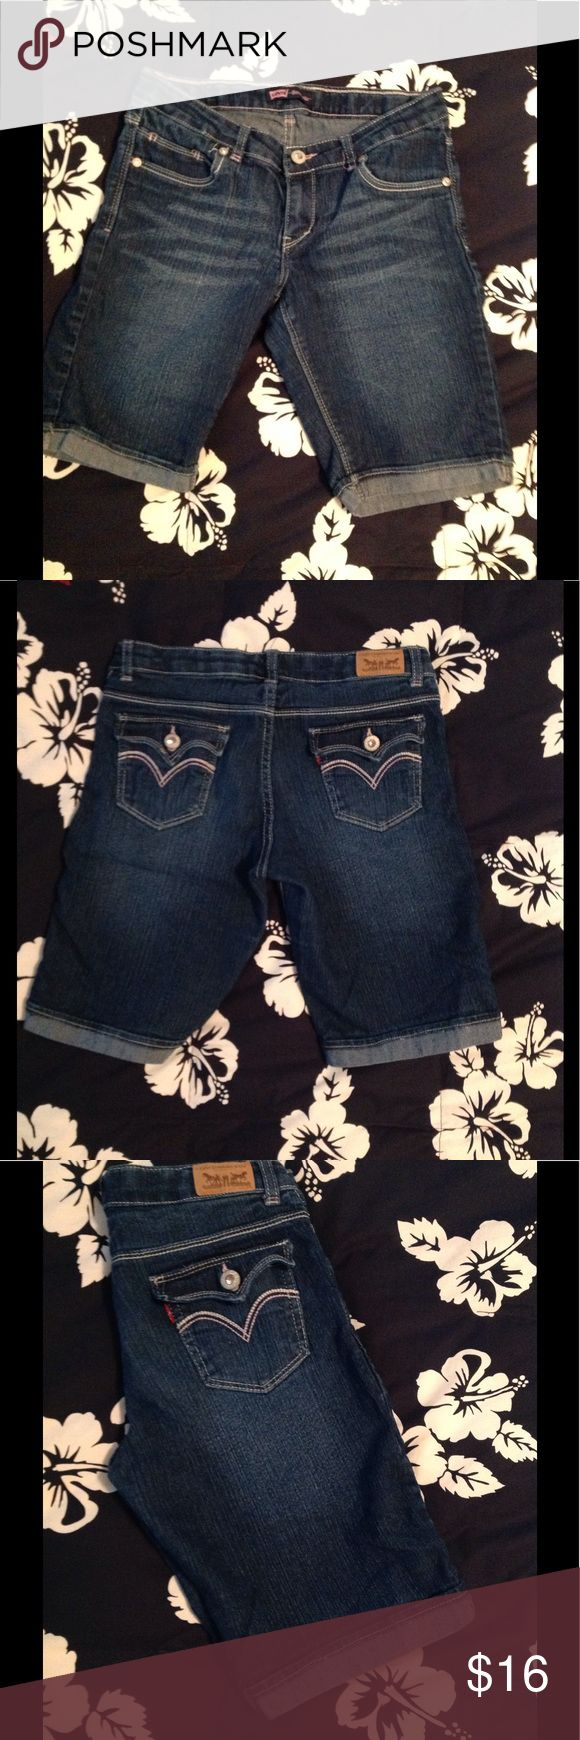 Girls Levi's Bermuda Jean Shorts 16 Like new. Cotton/poly/ramie/spandex. Cute 'bling' on pockets!  Adjustable waistband (only seen on inside!). Very Gently Worn...no sign of wear!! Girls 16 Levi's Bottoms Shorts